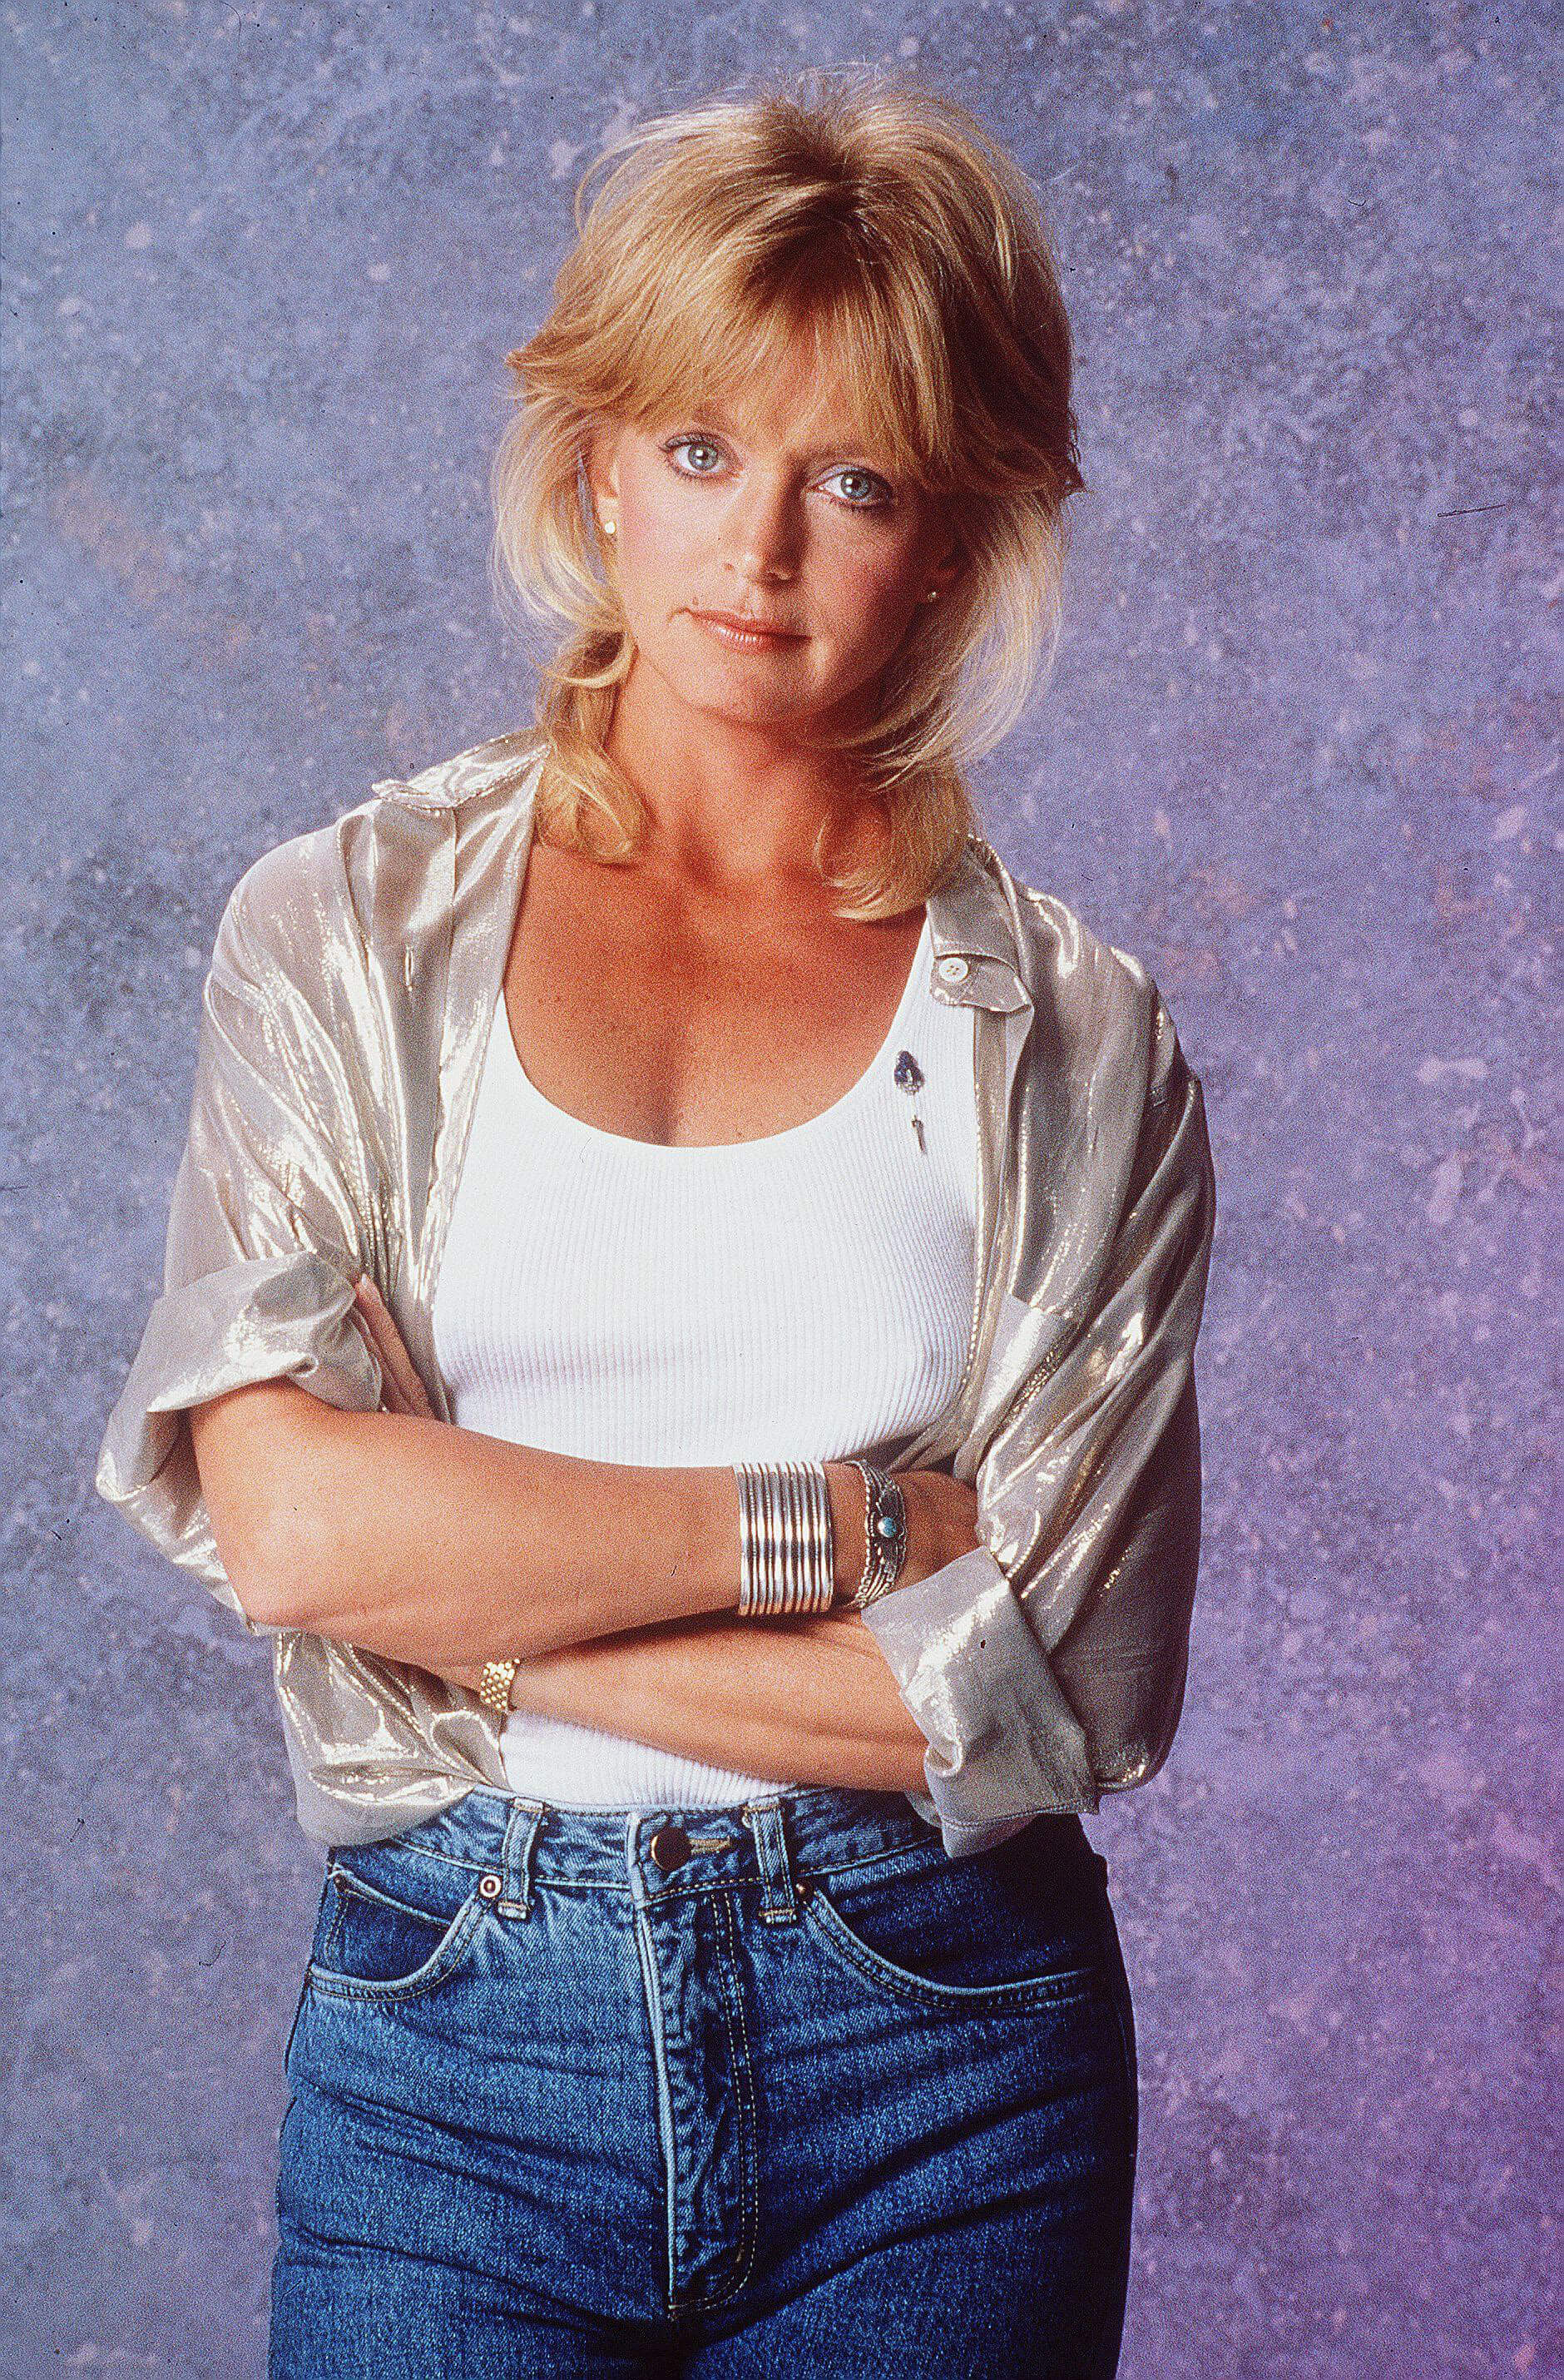 goldie hawn sexy look